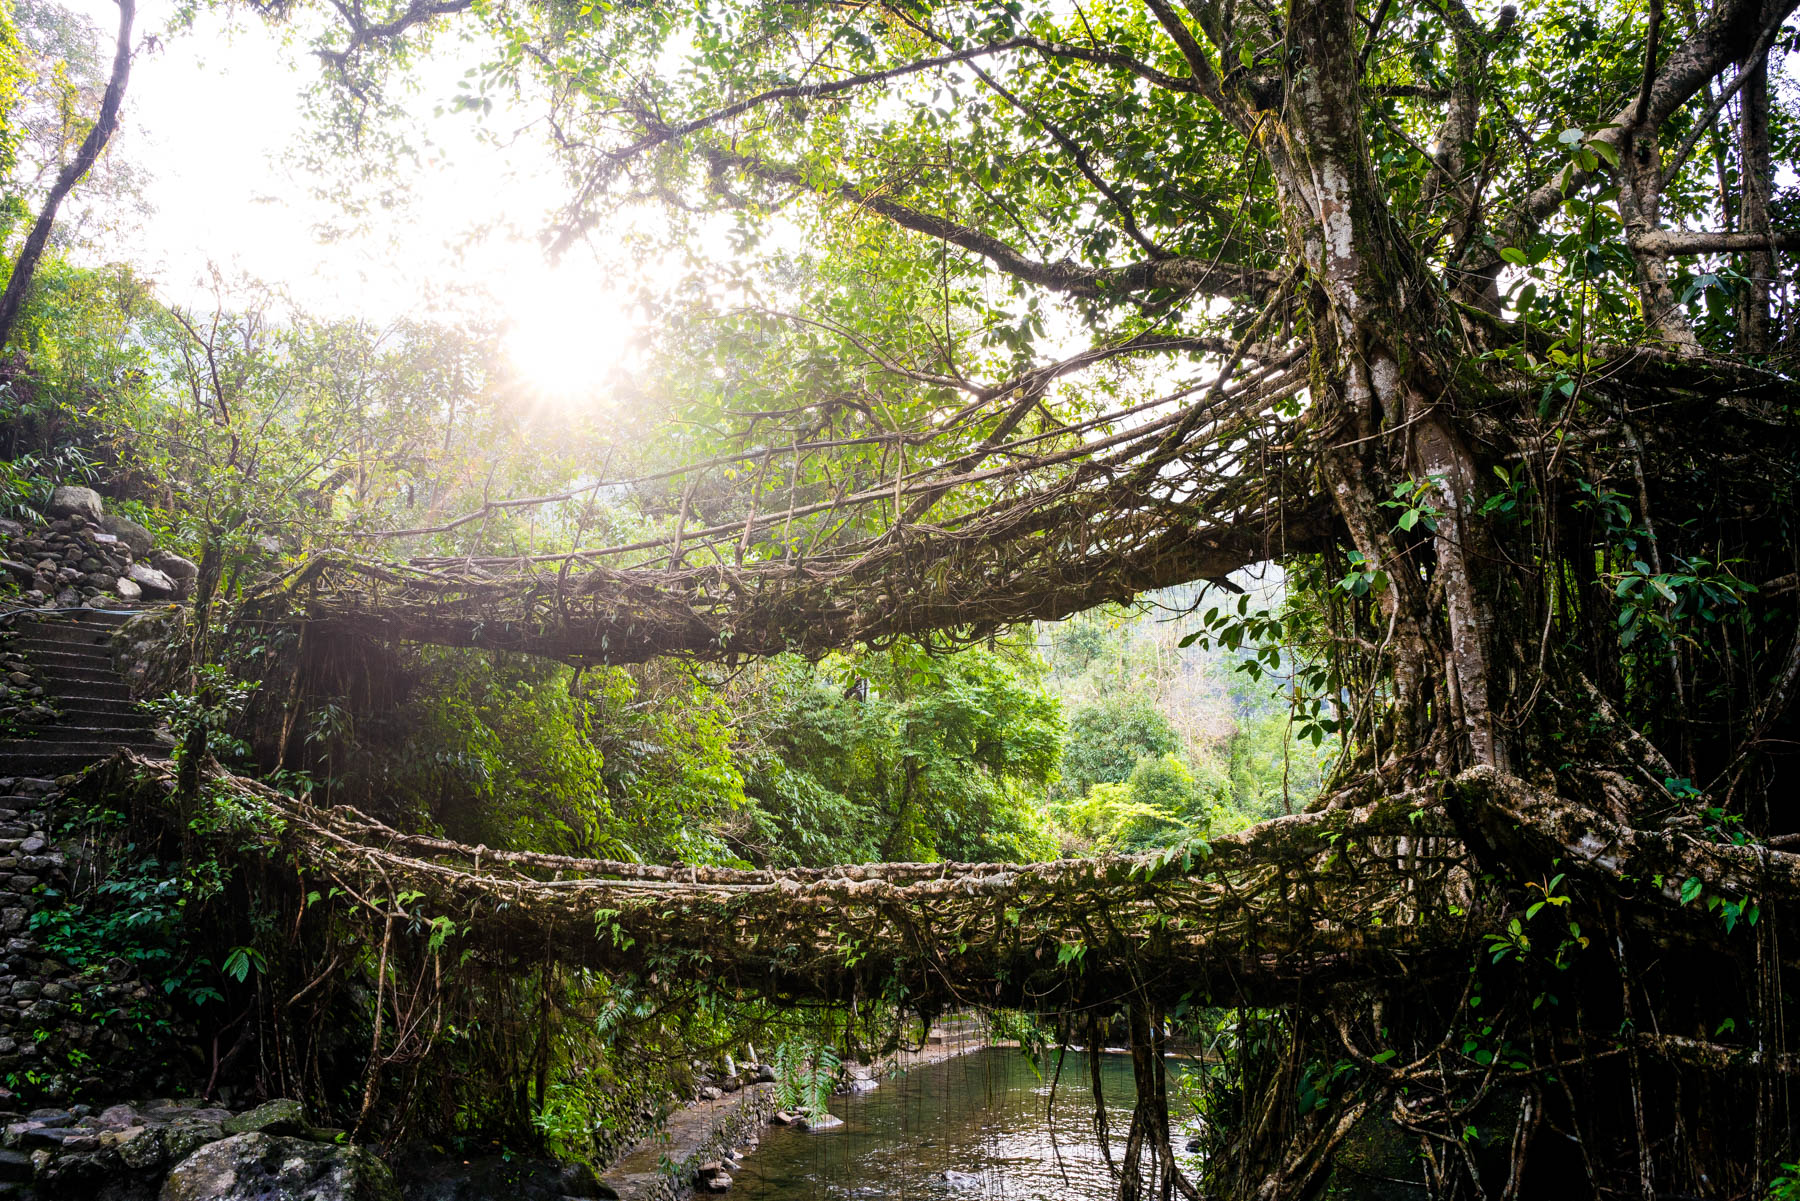 Double Decker Root bridge in Nongriat